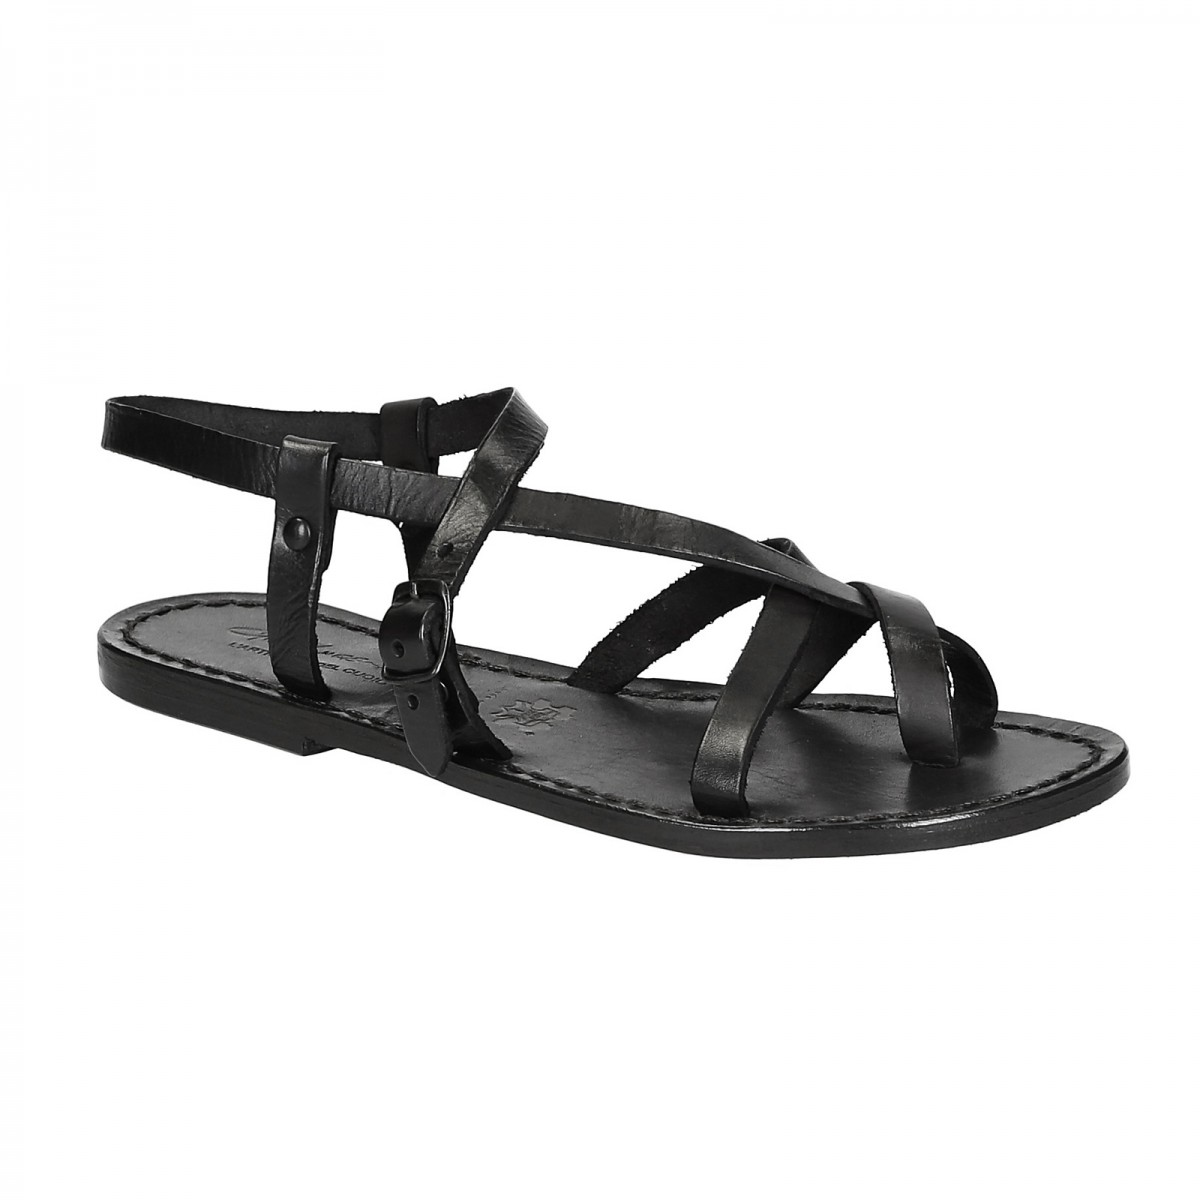 52ba1114511a Womens black strappy sandals handmade in cuir leather. Loading zoom